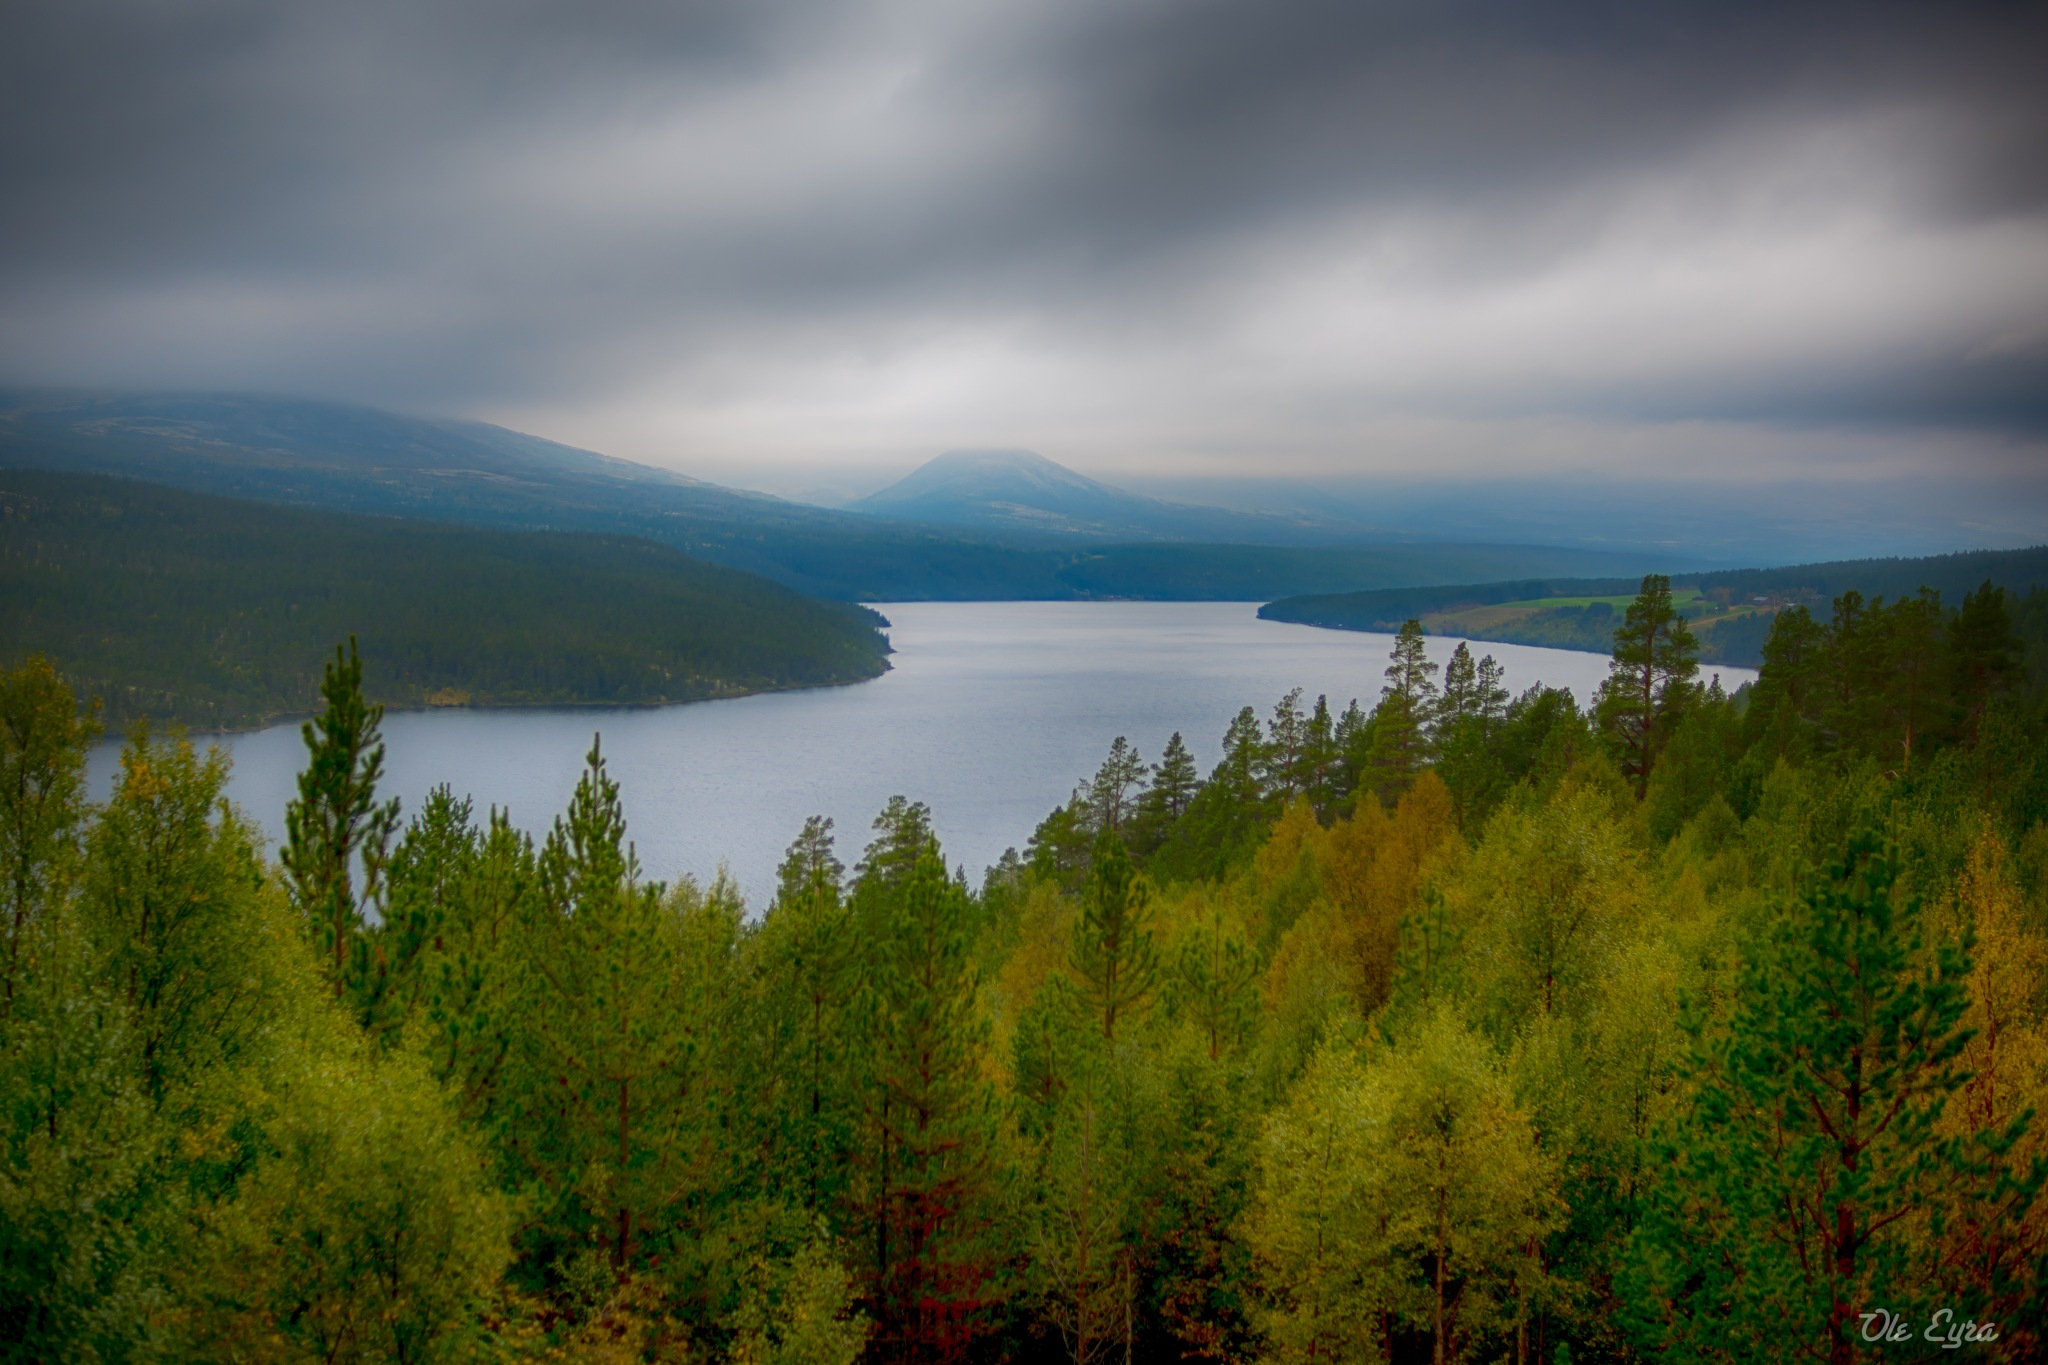 Viewing point by Ole Morten Eyra